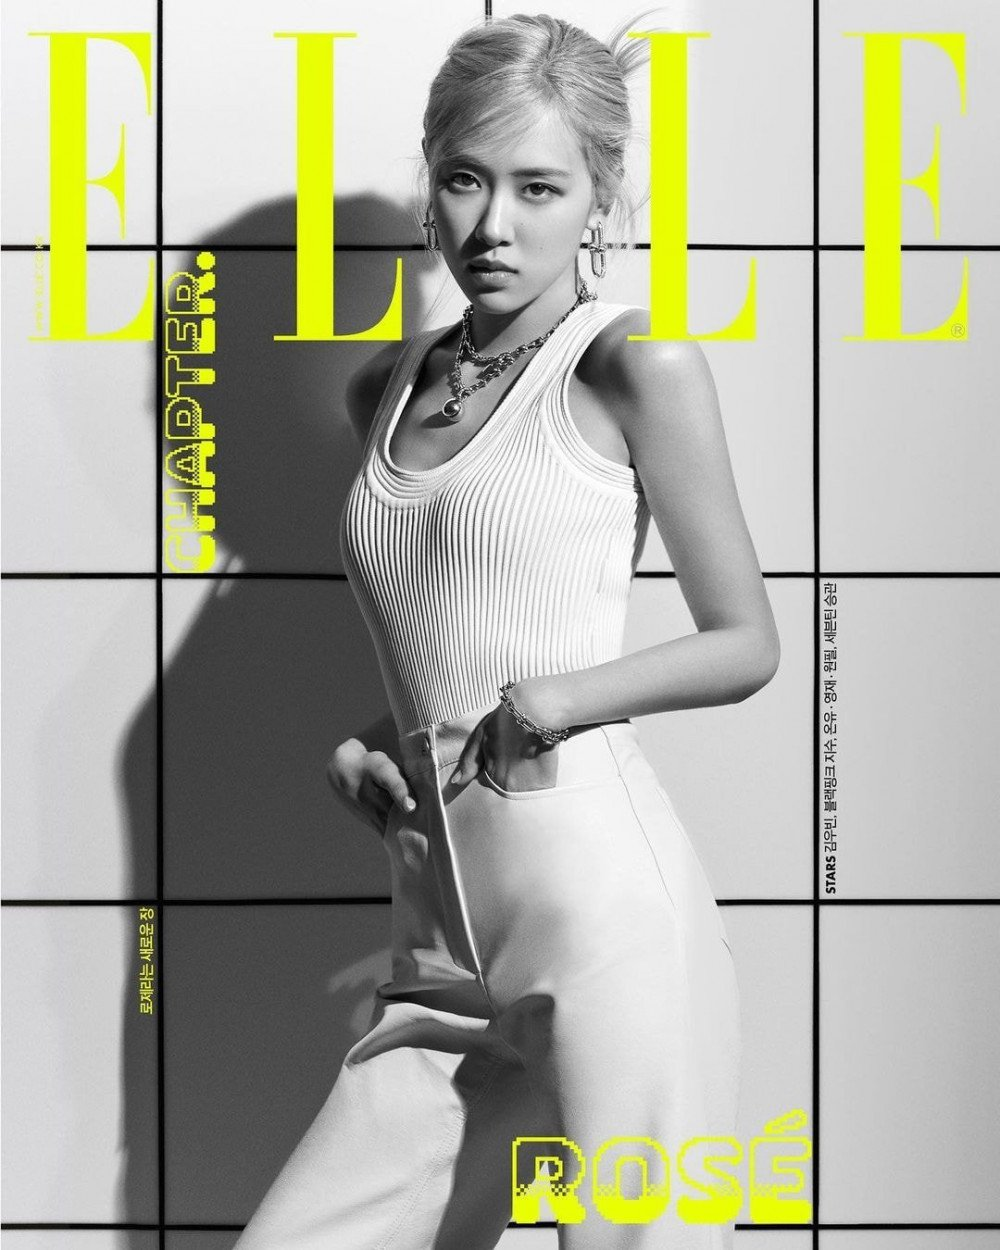 Rosé Stuns On The Cover Of 'Elle' As The New Global Ambassador For 'Tiffany & Co.'